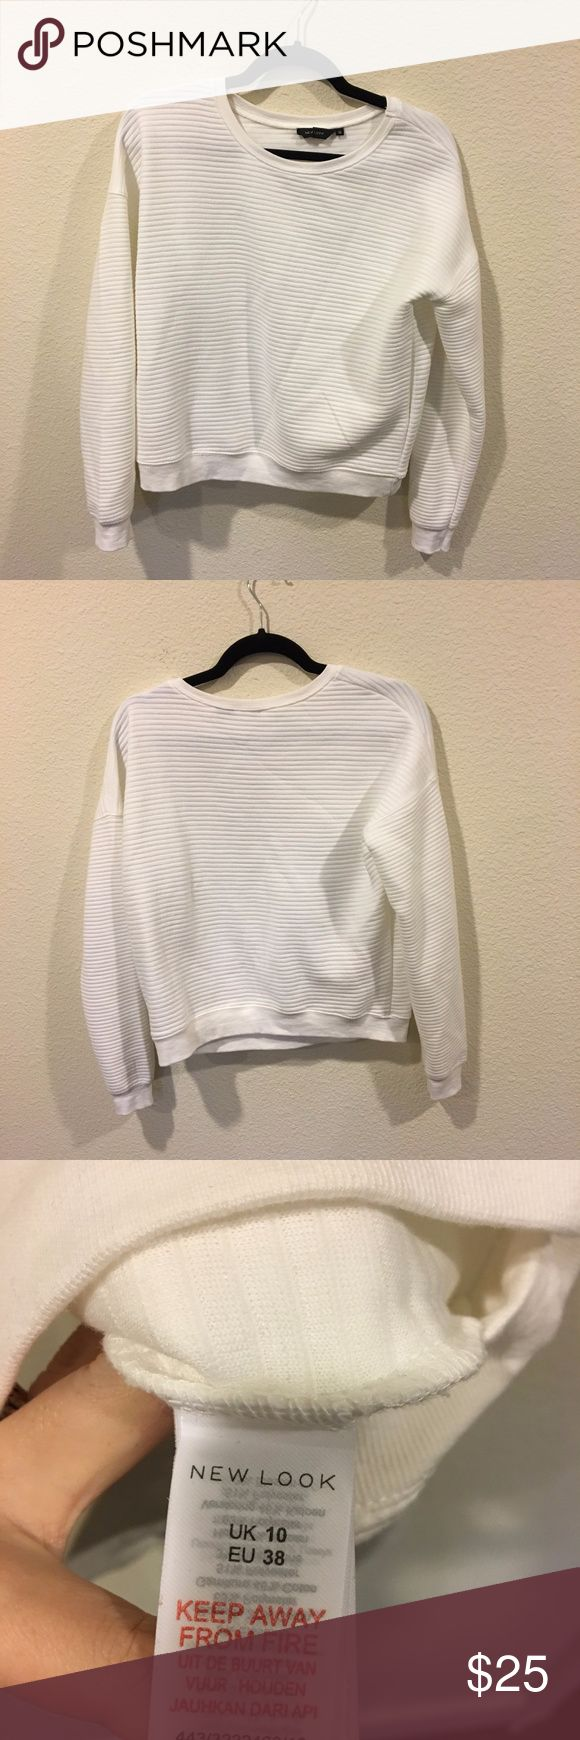 New Look white striped sweatshirt Classic white jumper! From the Real Fashionista blog. No trades. New Look Tops Sweatshirts & Hoodies